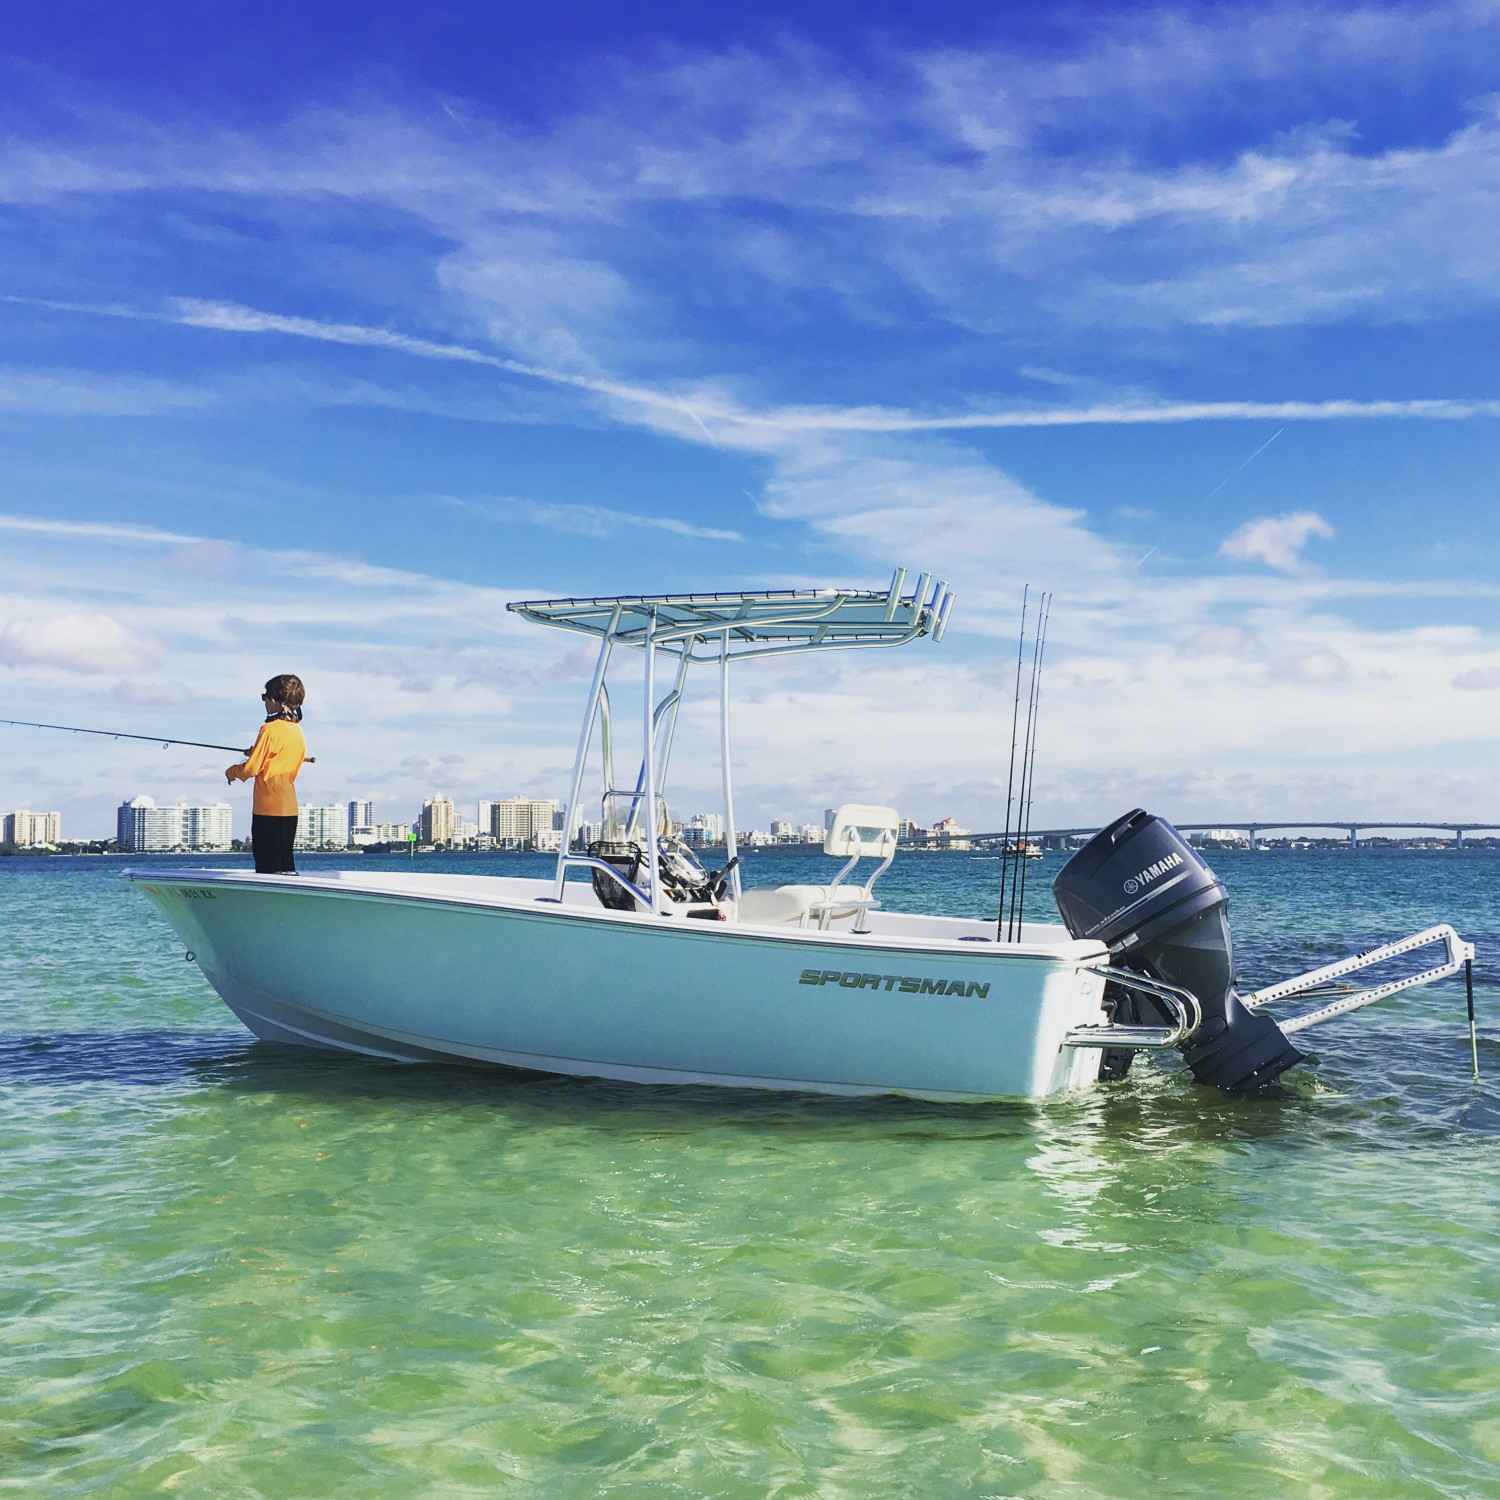 Title: Downtown Sarasota florida - On board their Sportsman Island Reef 19 Center Console - Location: sarasota florida. Participating in the Photo Contest #SportsmanFebruary2018